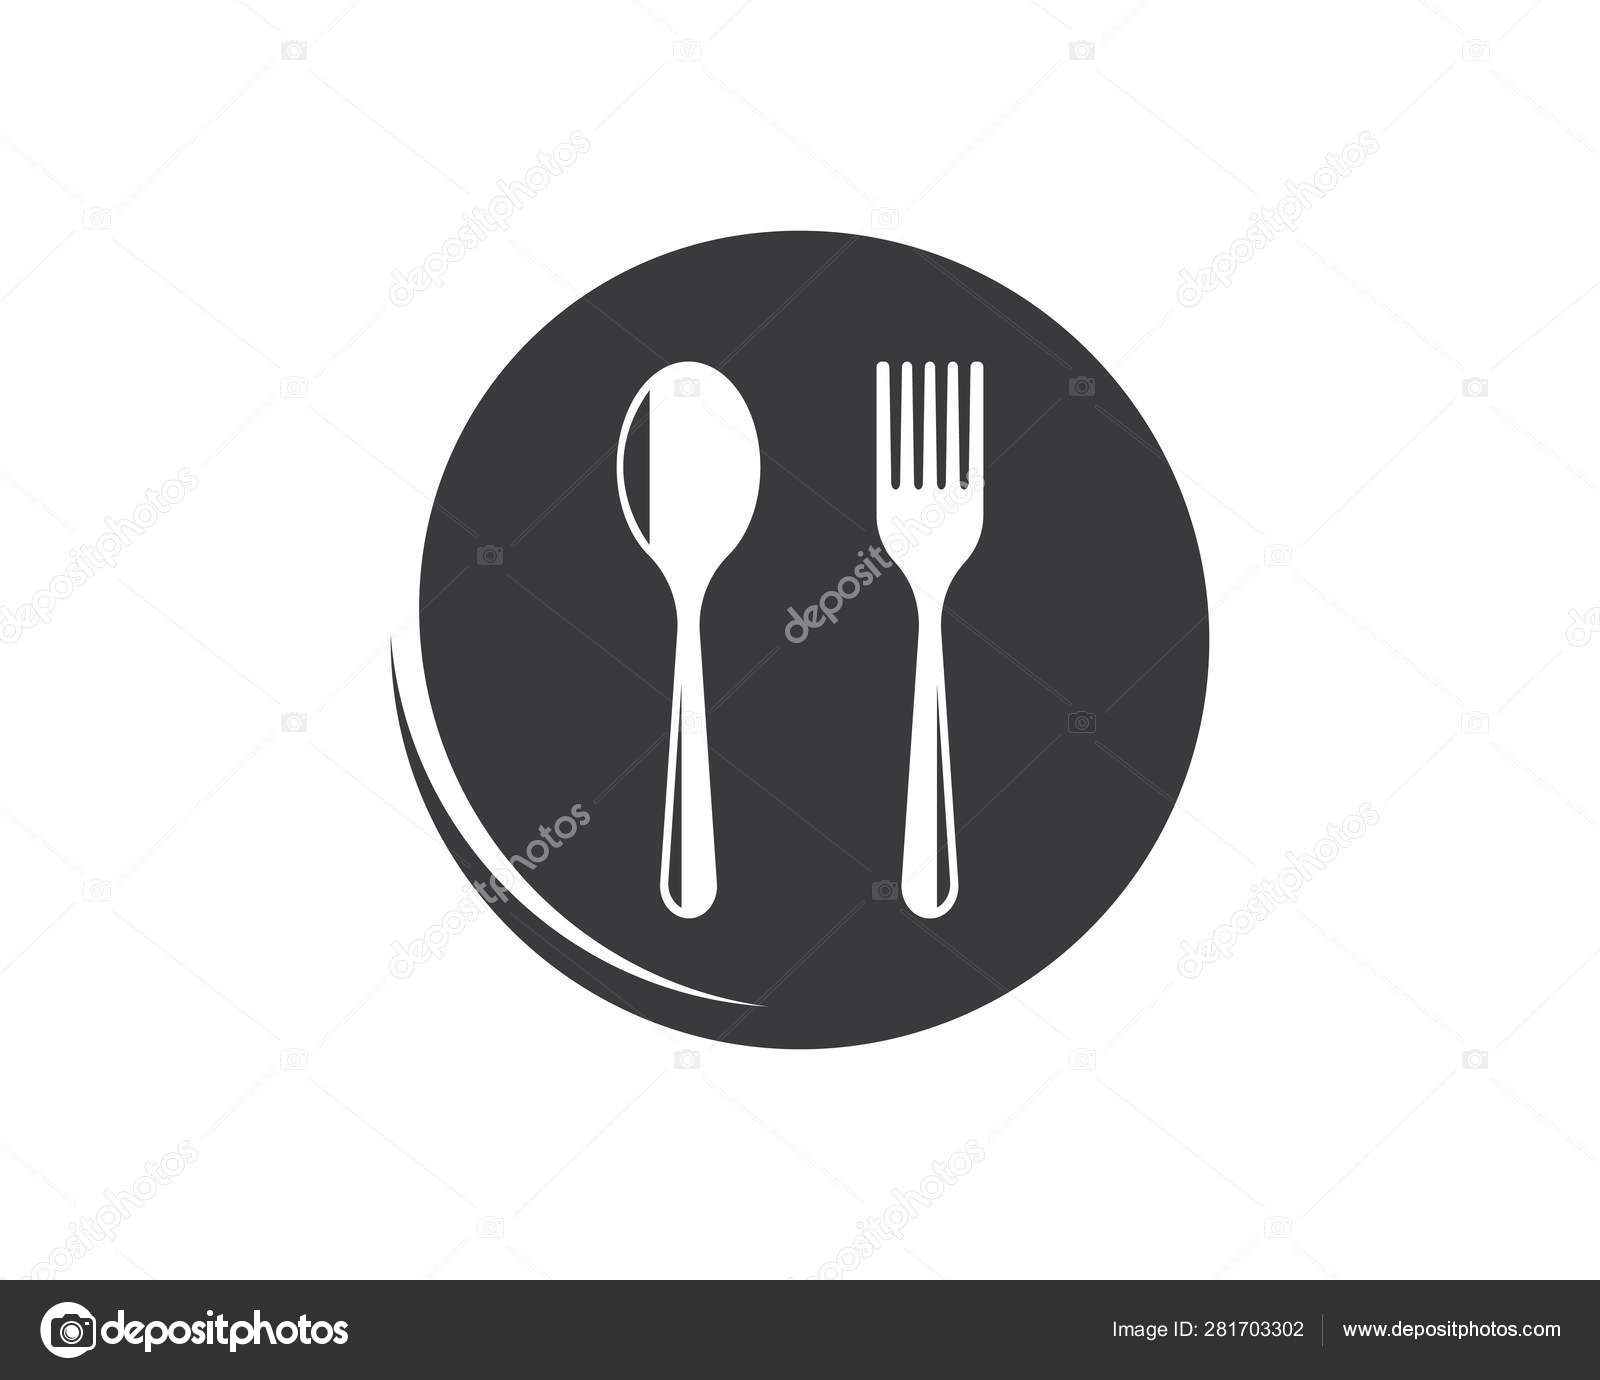 fork and spoon icon logo vector illustration stock vector c sangidan 281703302 fork and spoon icon logo vector illustration stock vector c sangidan 281703302